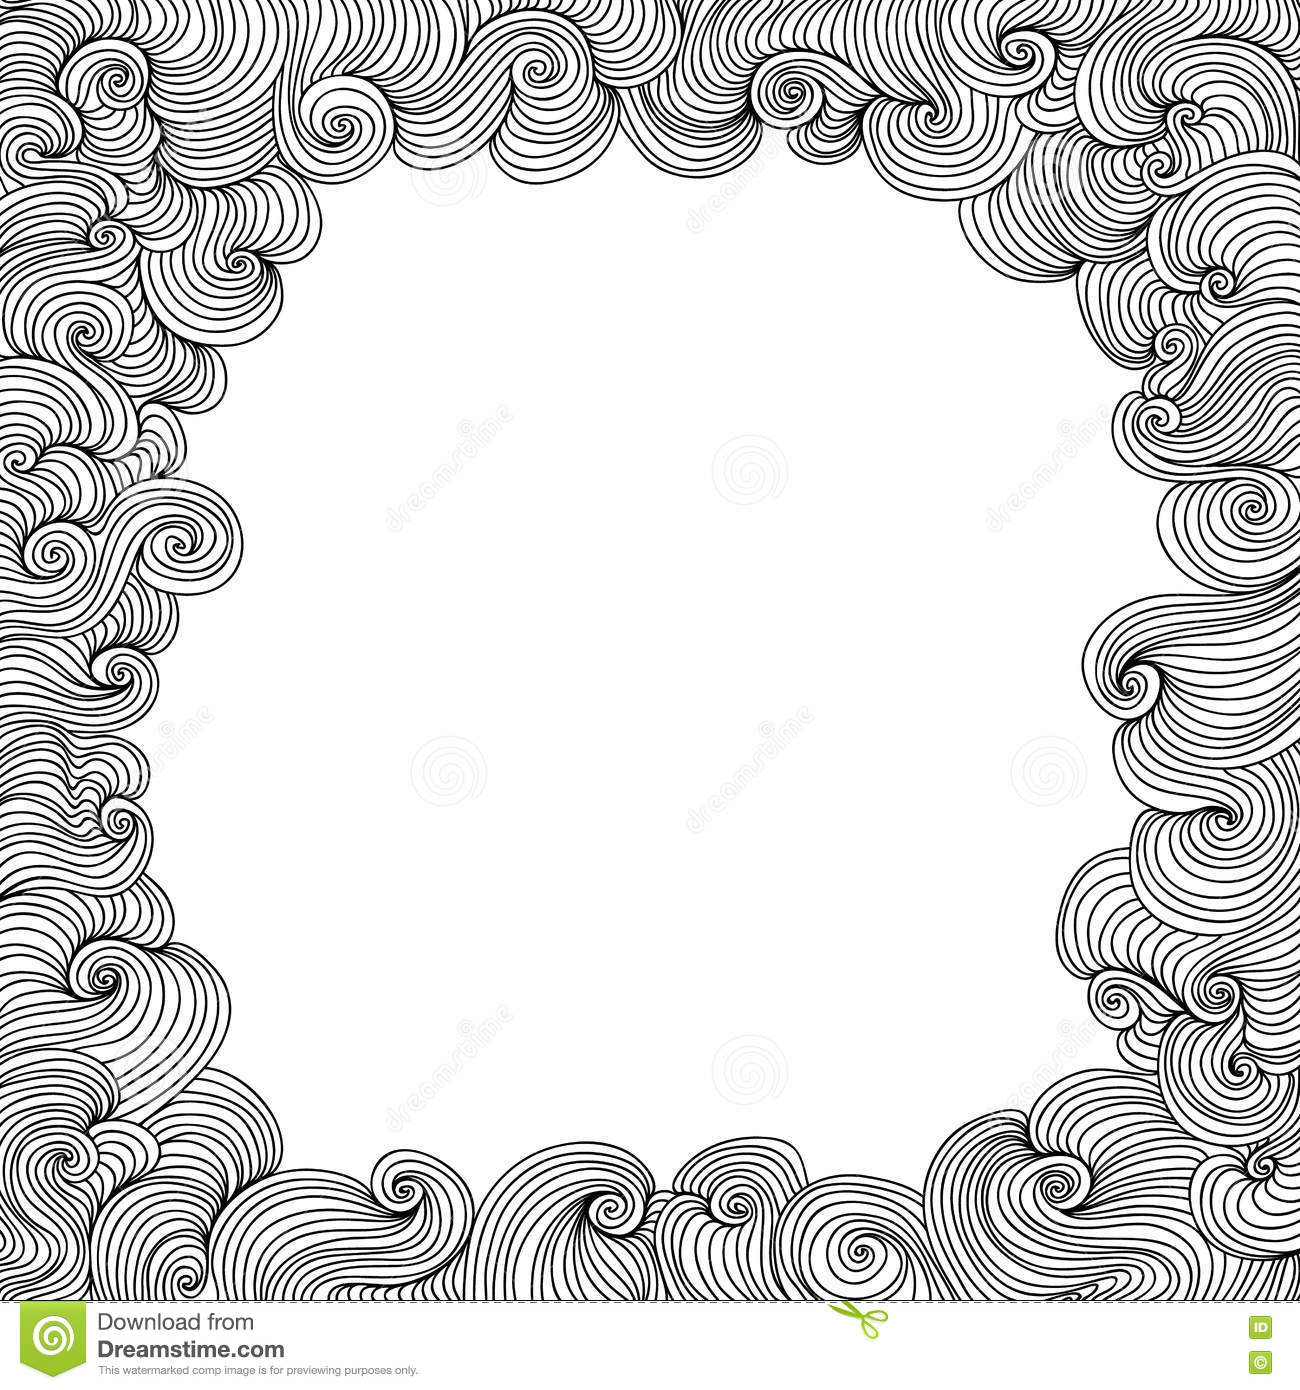 Vector black and white figured frame with curling lines